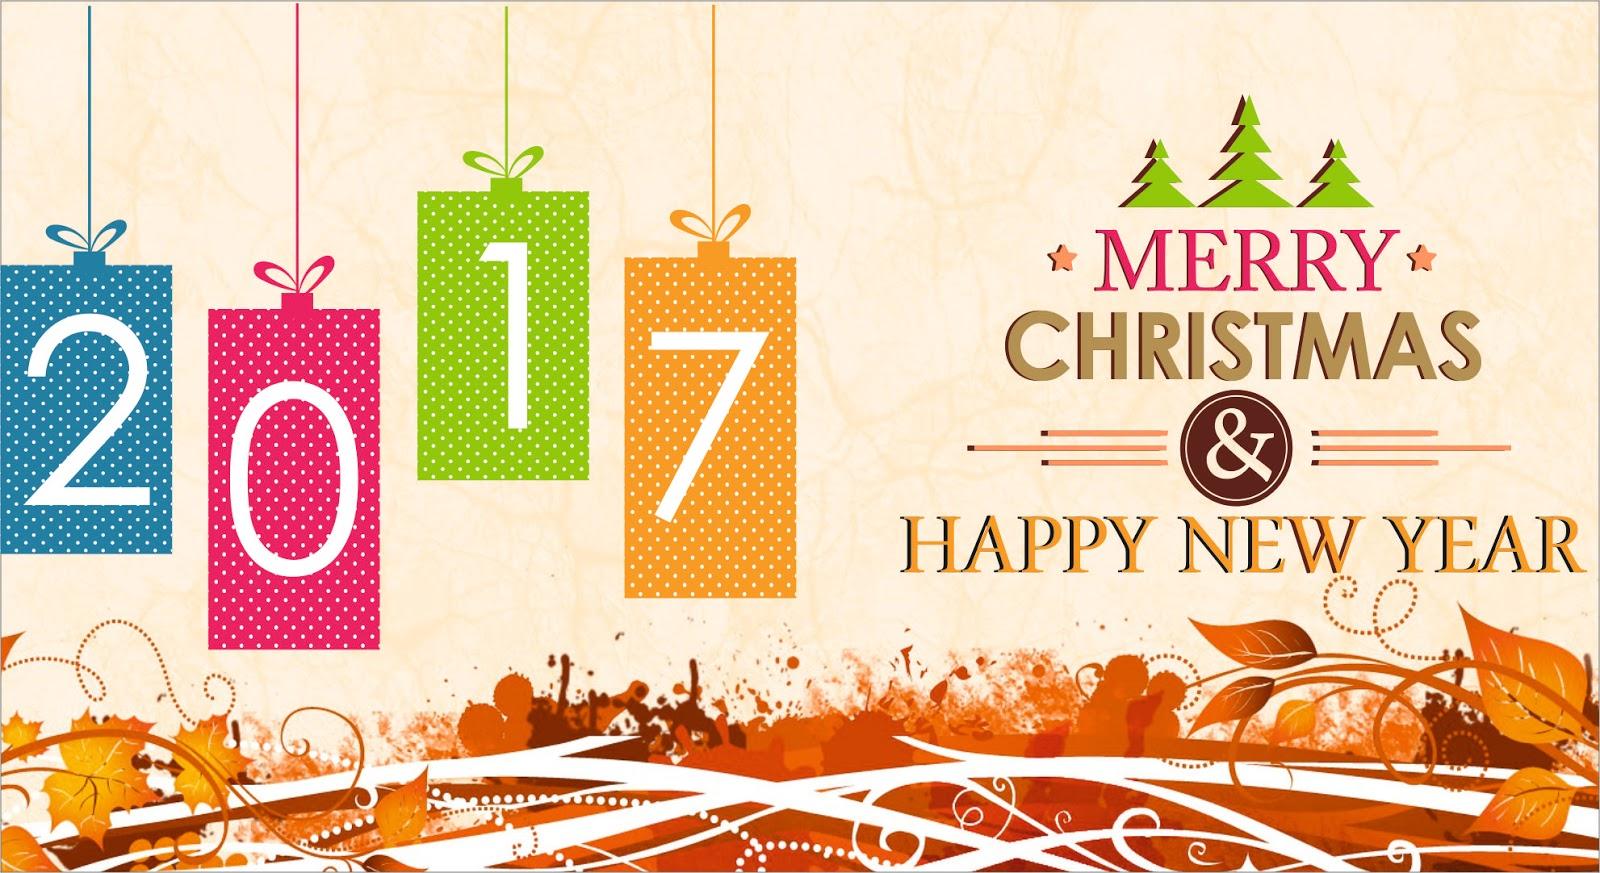 Merry Christmas And Happy New Year Wallpaper Wish You Merry